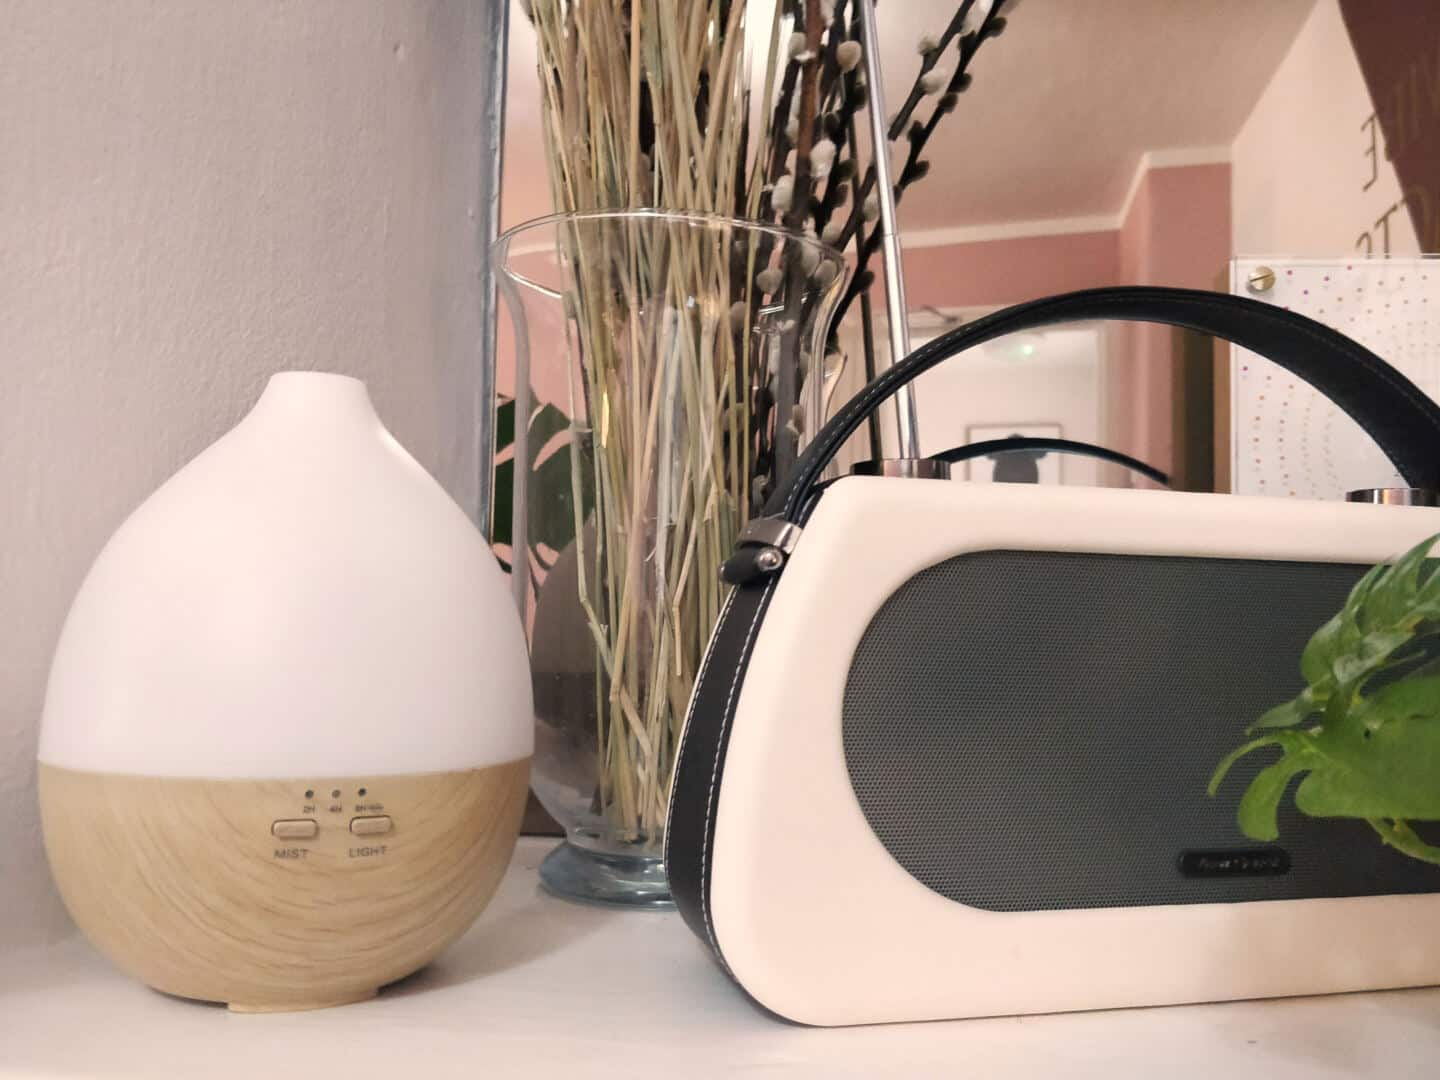 Smellacloud aroma diffuser on a shelf next to a radio and some pampas grass